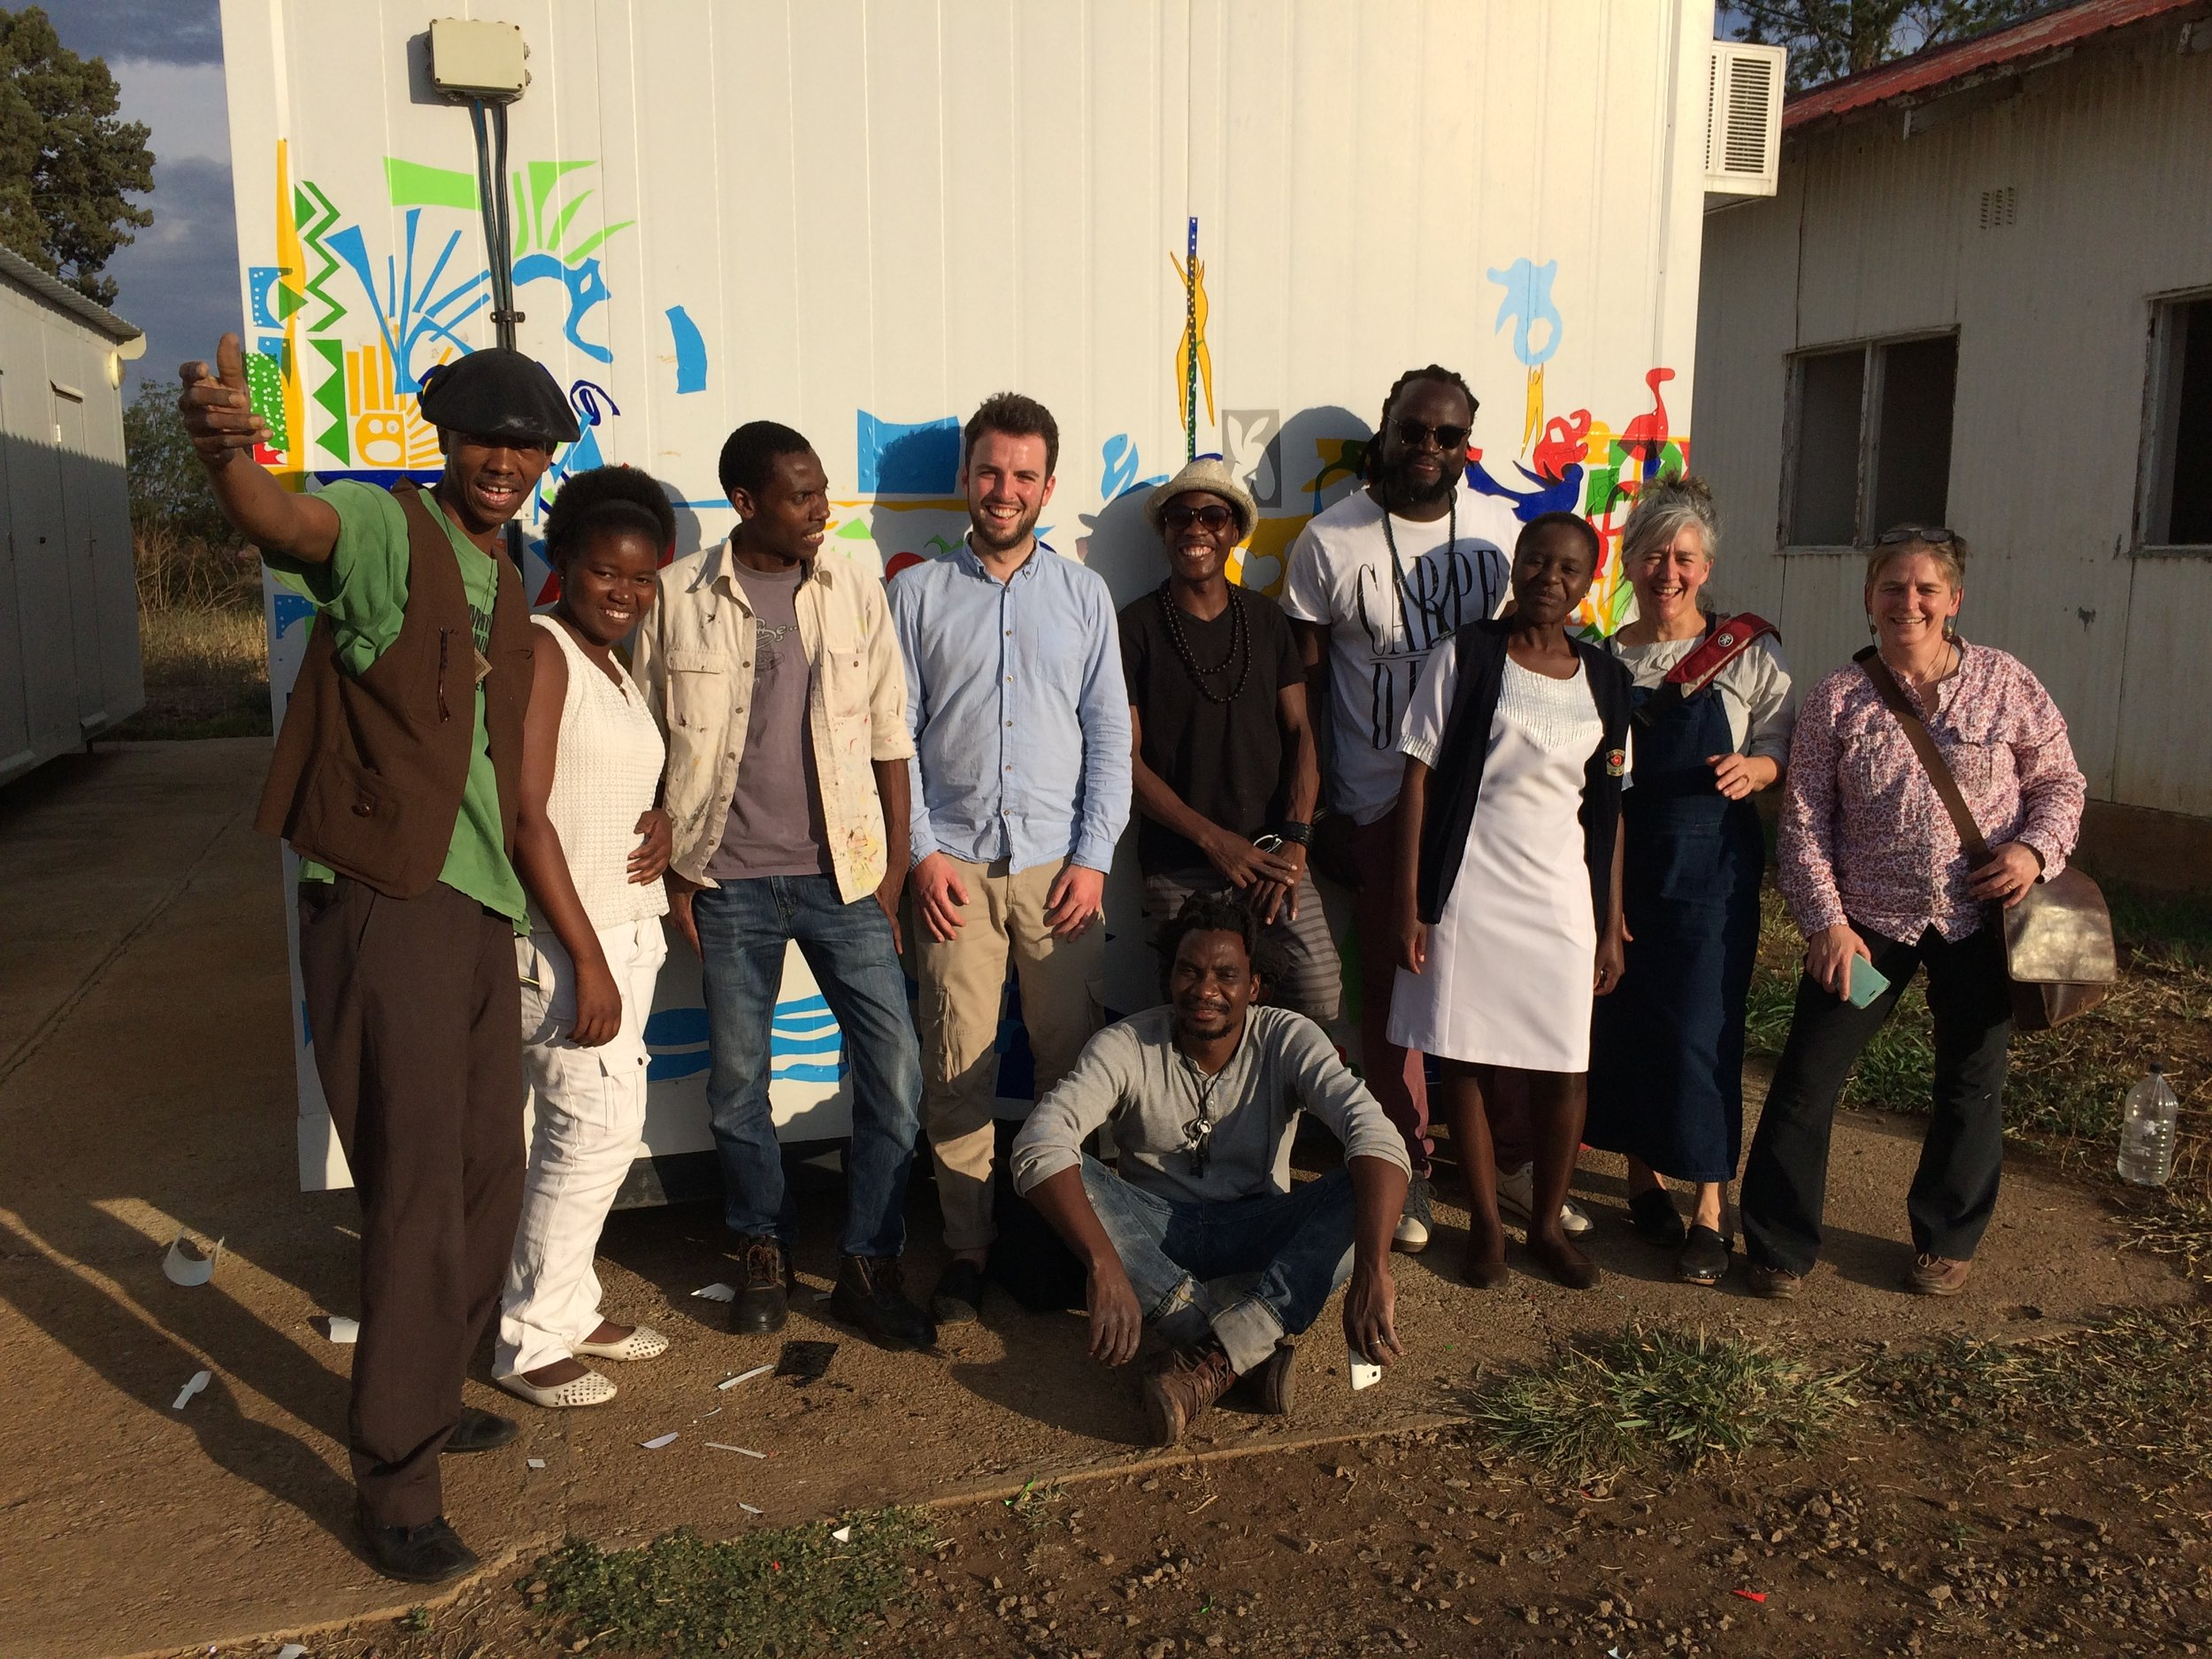 Bulawayo-based artists at Lady Rodwell including Danisile Ncube, Omega Sibanda, Talent Kapadza, Owen Maseko, George Masarira, and Charles Bhebe. Also featured: Shane Strachan (Writer), Sue Fairburn (Designer) and Sally Thomson (Director, Grampian Hospitals Arts Trust)